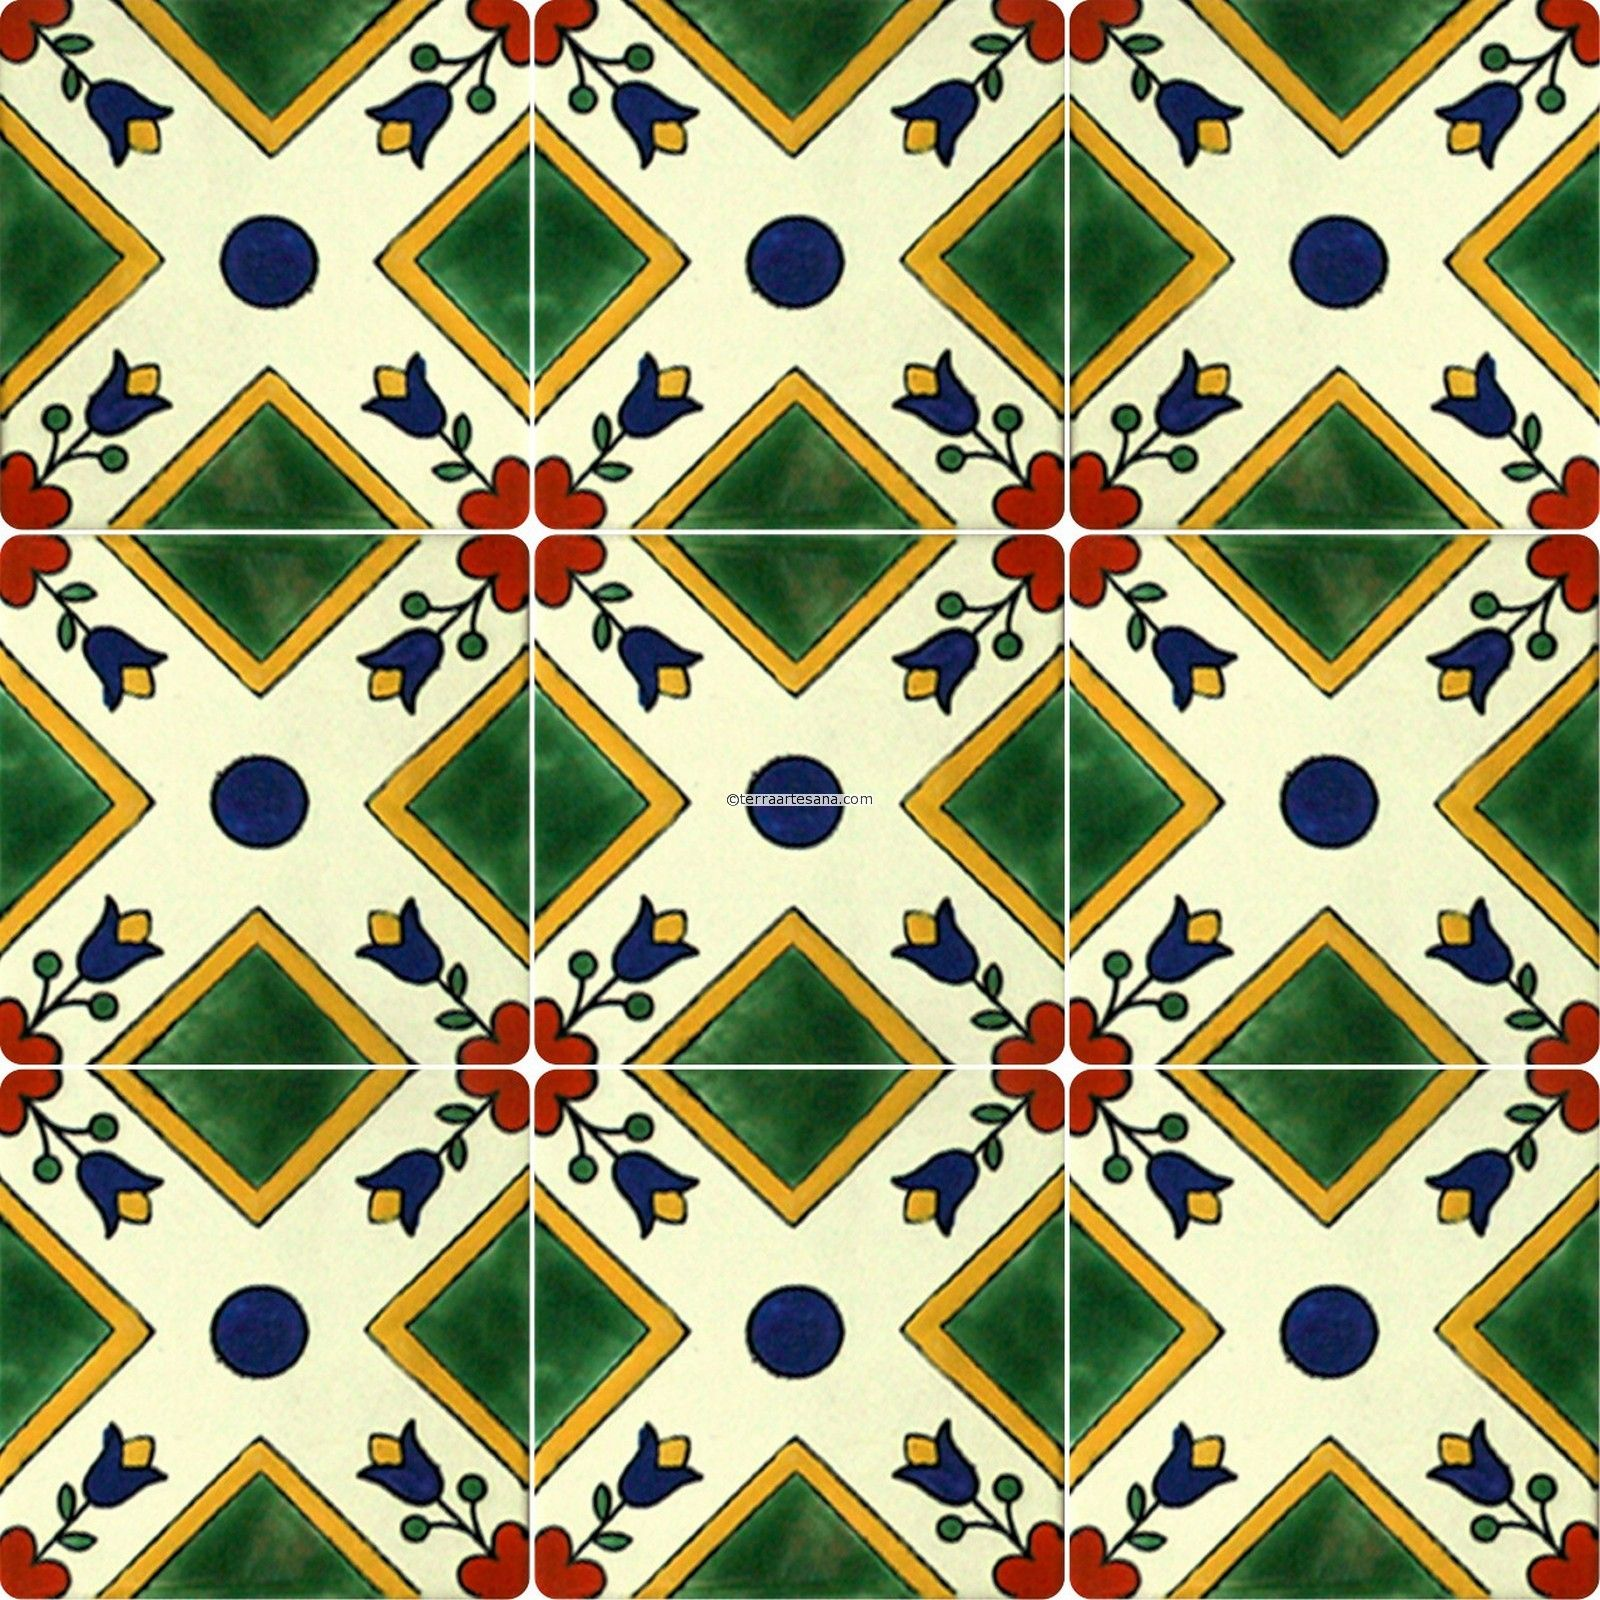 talavera tile Google Search Tile wallpaper, Talavera